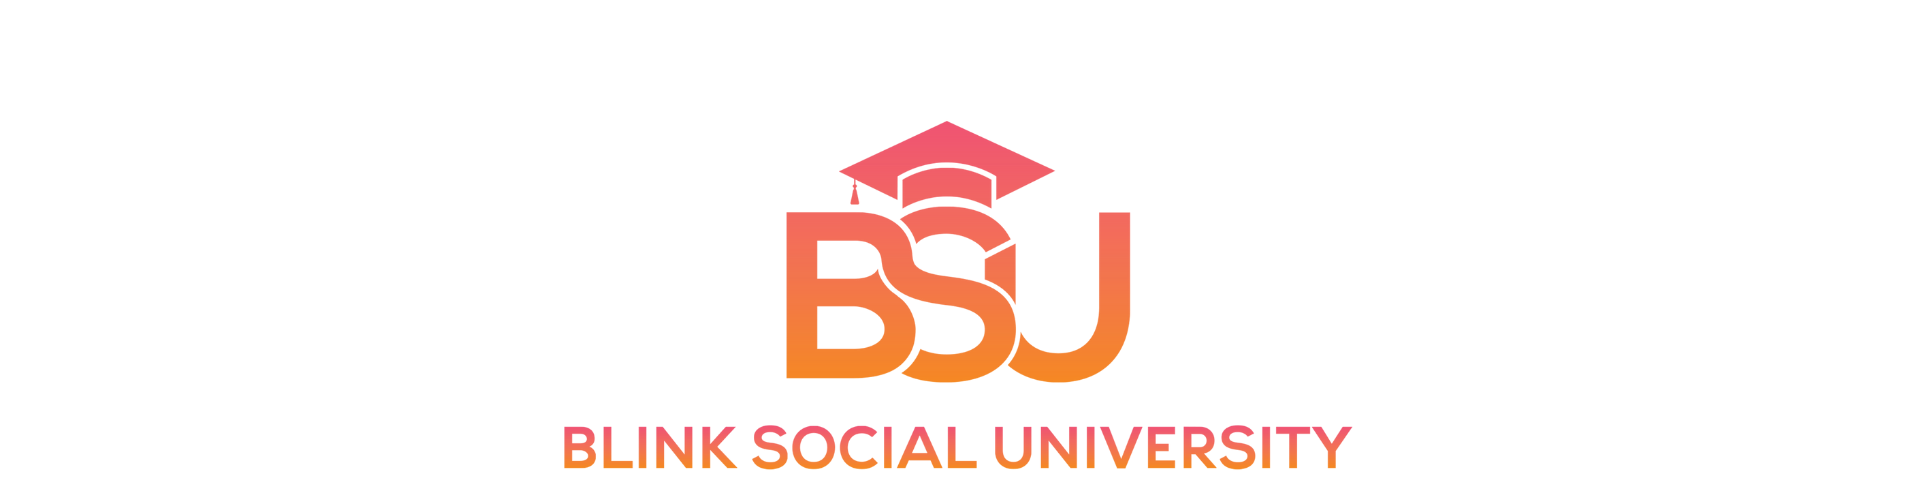 Blink Social University is a social learning platform that helps new and experienced freelancers level-up their skills. We offer a series of online courses that teach our users new skills in the digital freelance industr